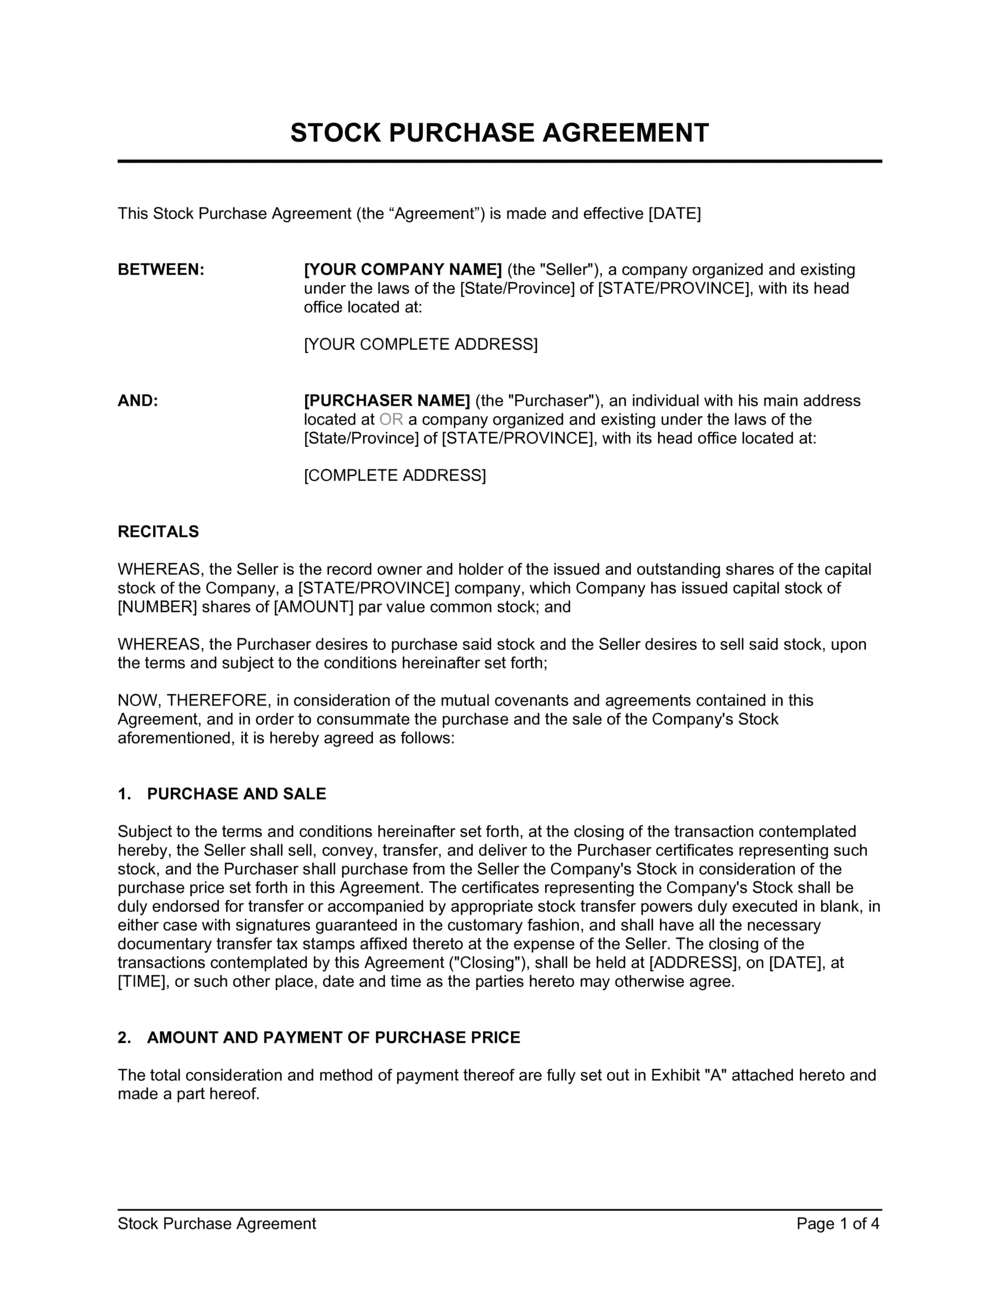 Business-in-a-Box's Stock Purchase Agreement Template